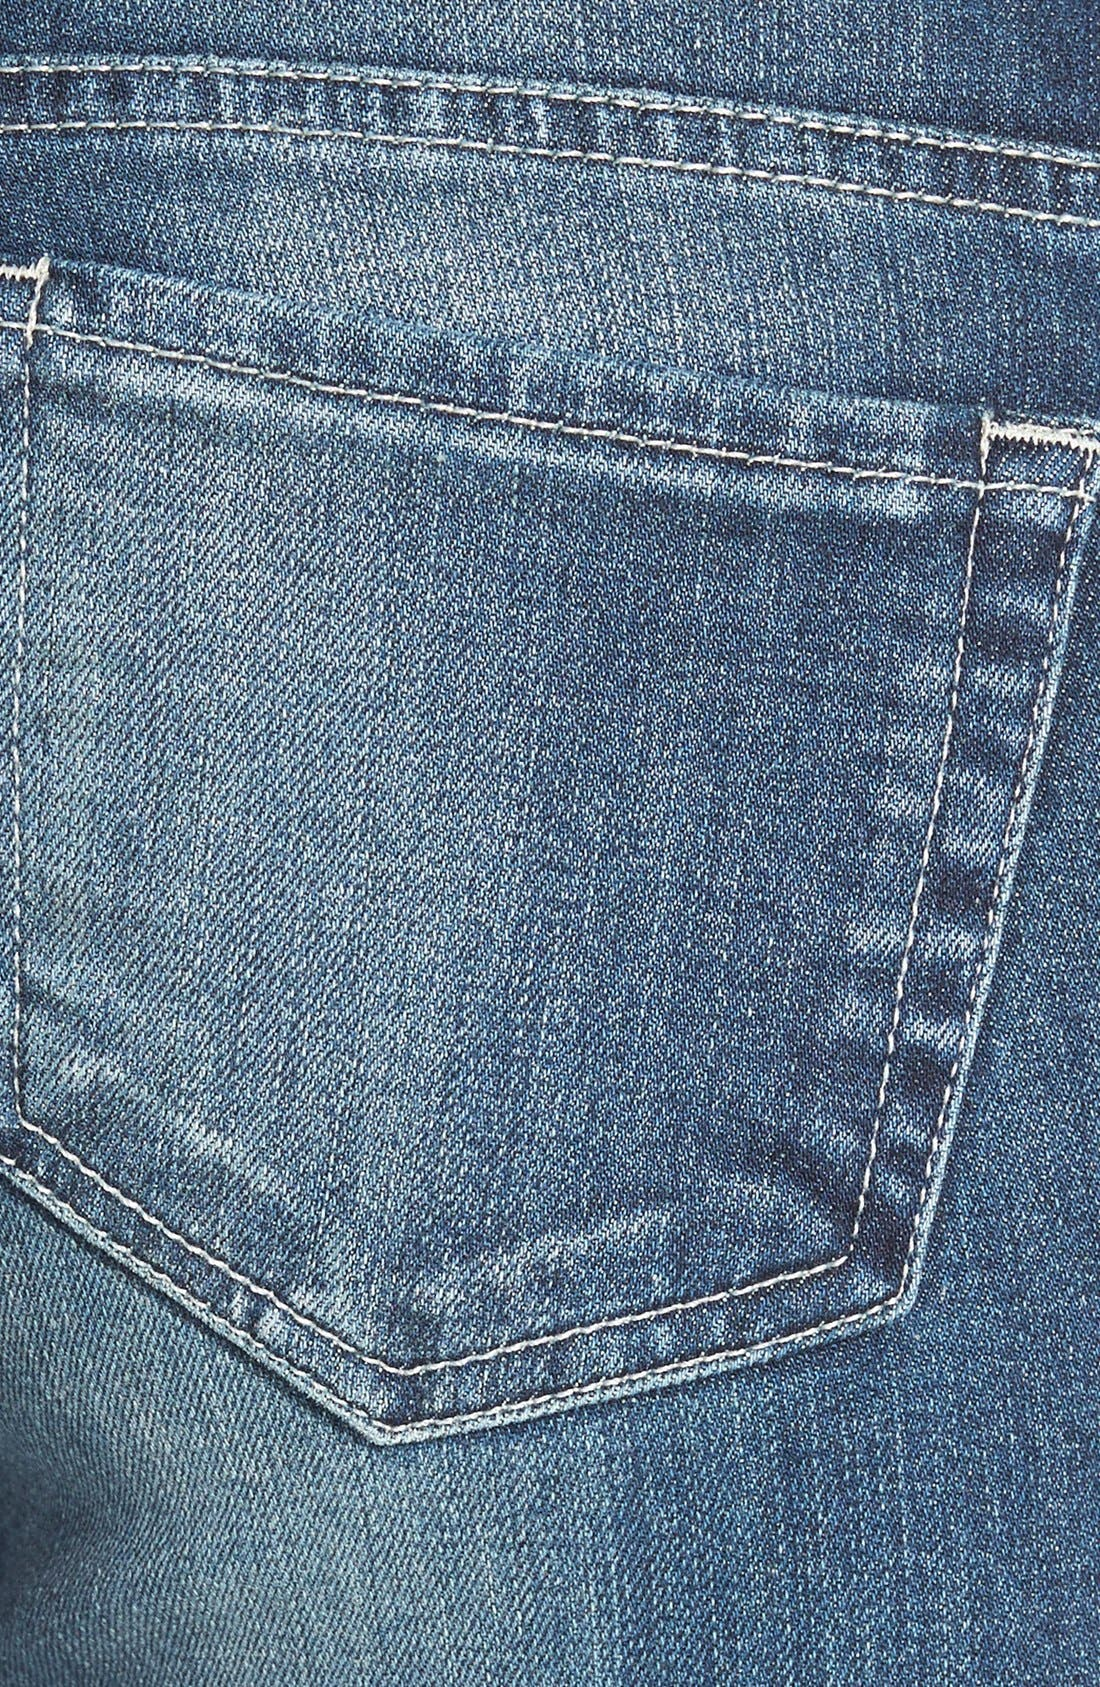 Alternate Image 3  - KUT from the Kloth 'Adele' Distressed Slouchy Boyfriend Jeans (Close)